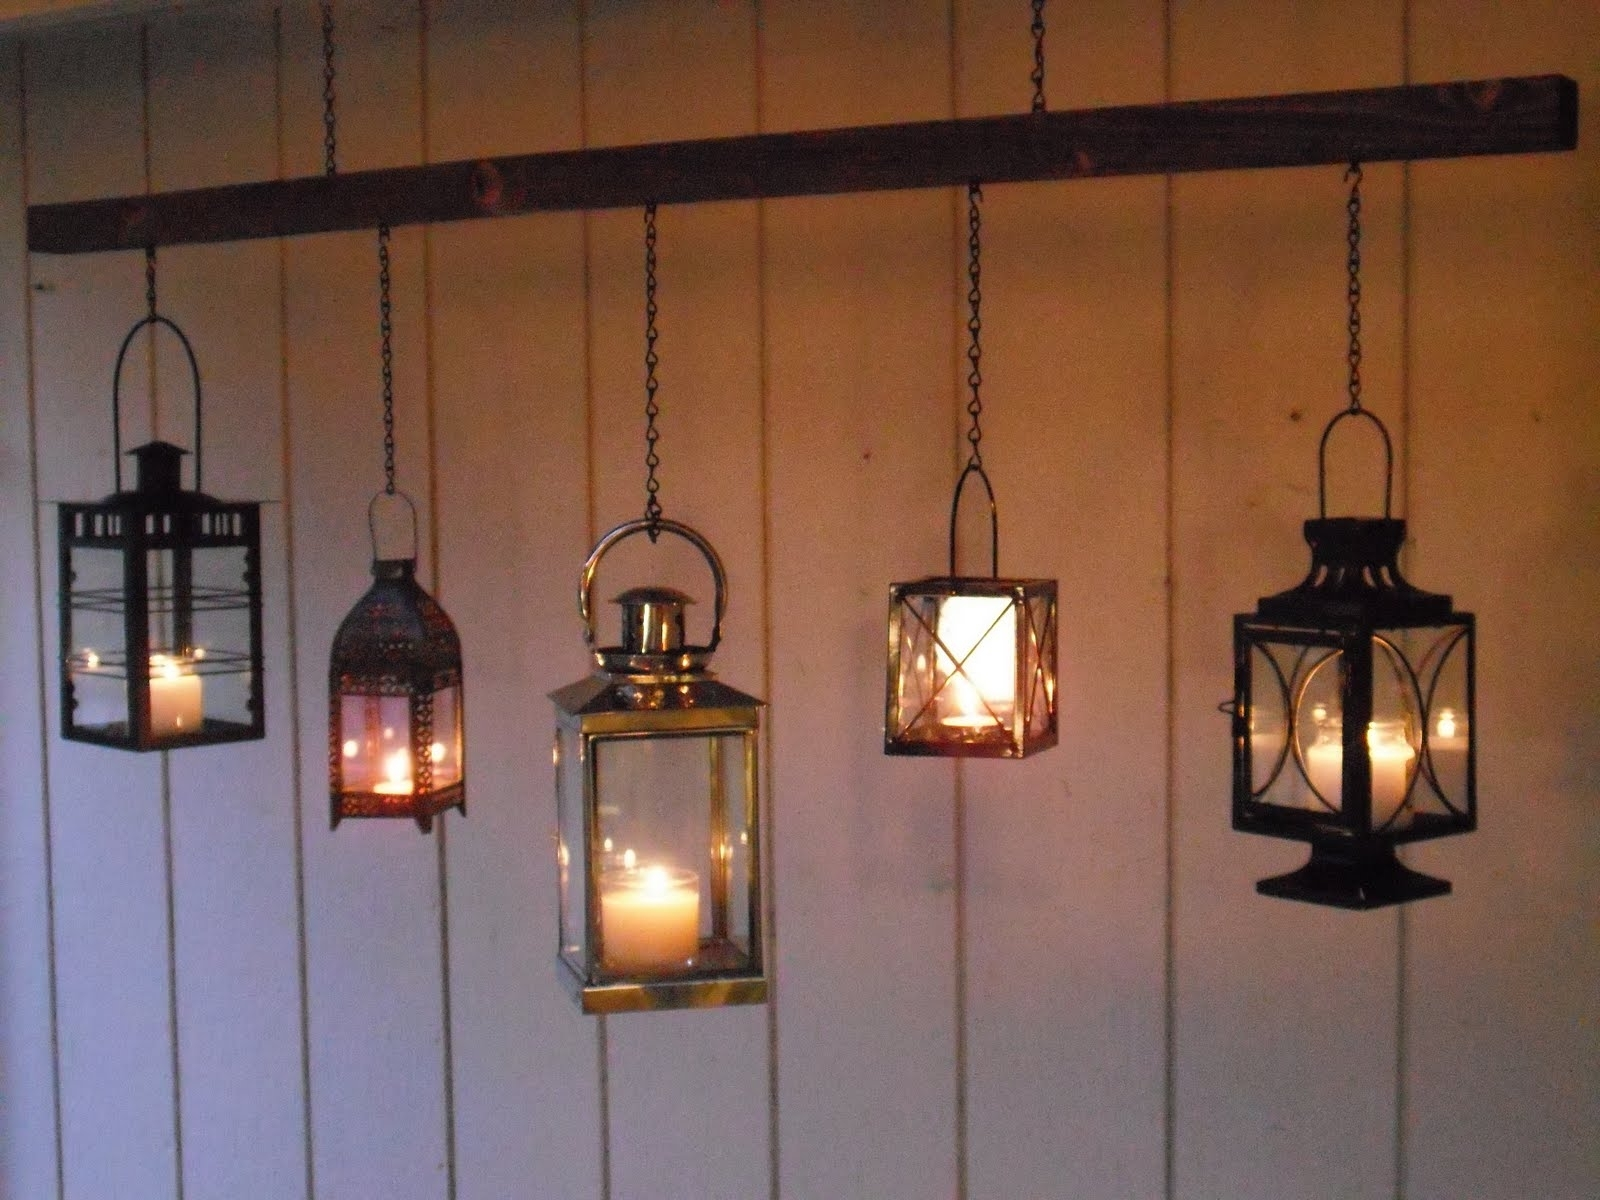 Newest Wedding Decoration Hanging Candle Lanterns – Matt And Jentry Home Design Inside Outdoor Hanging Lanterns Candles (View 14 of 20)